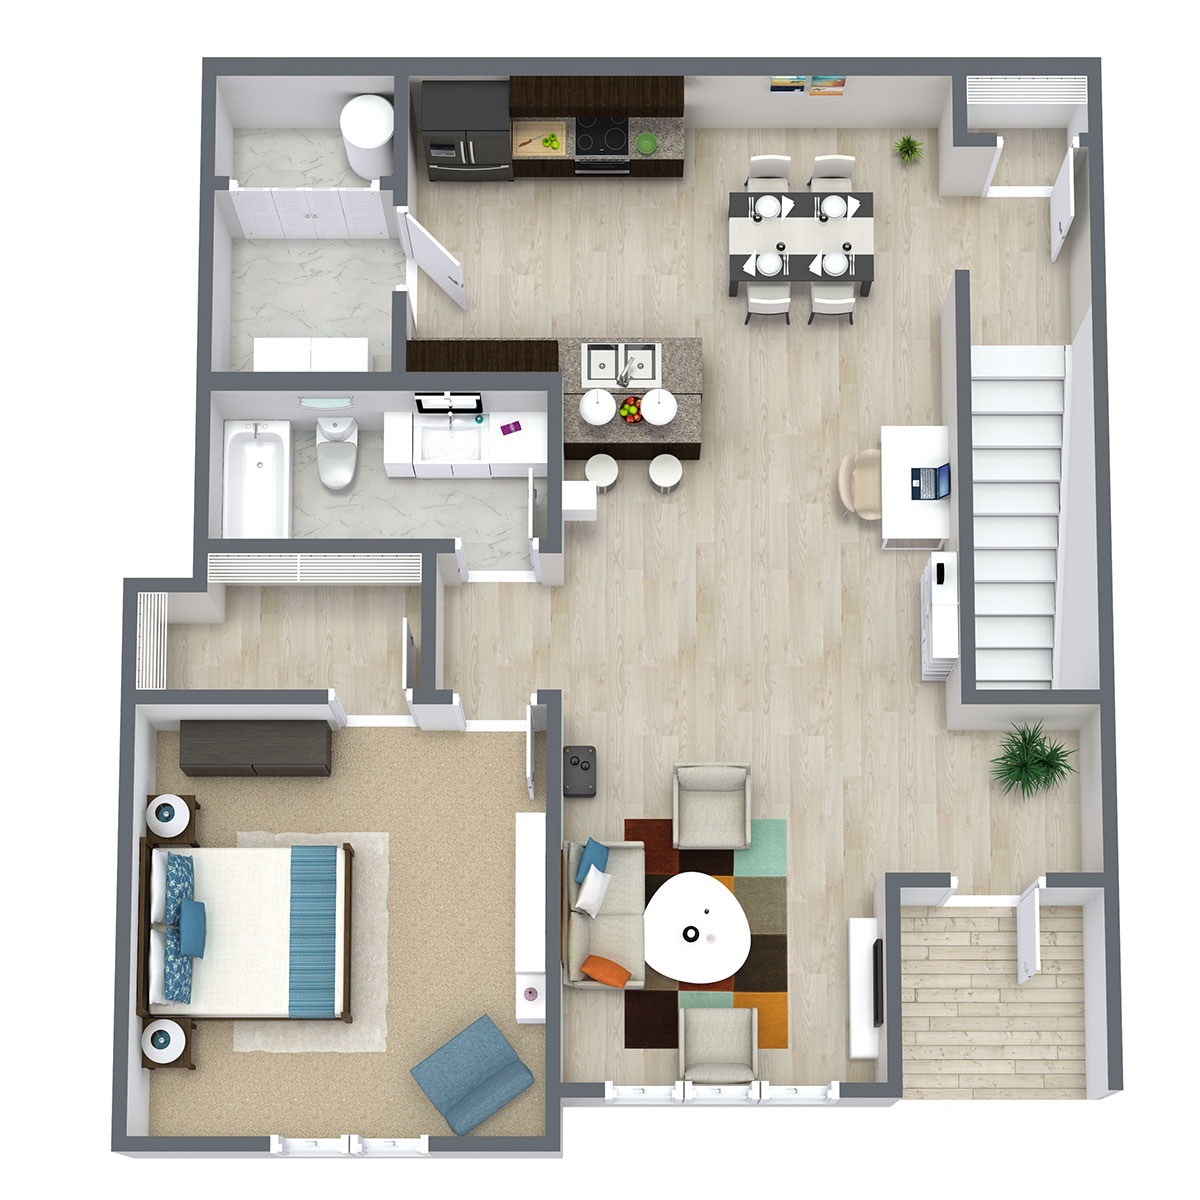 Floorplan - One Bed One Bath 959 image